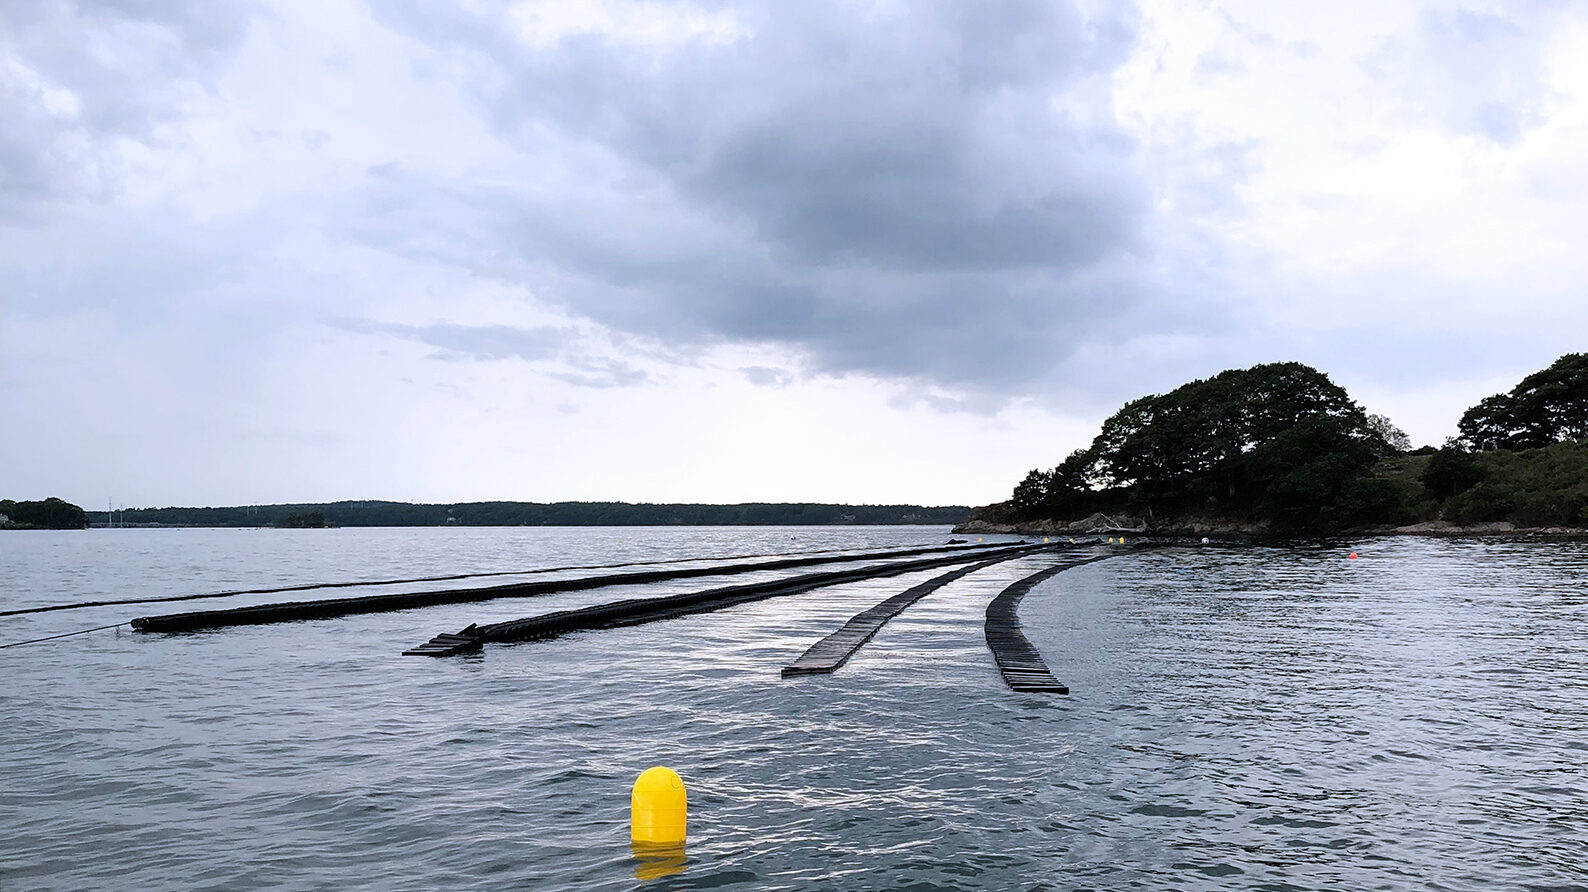 Three rows of oyster cages at Butterfield Shellfish Company's oyster farm in Casco Bay with land and trees in the background.